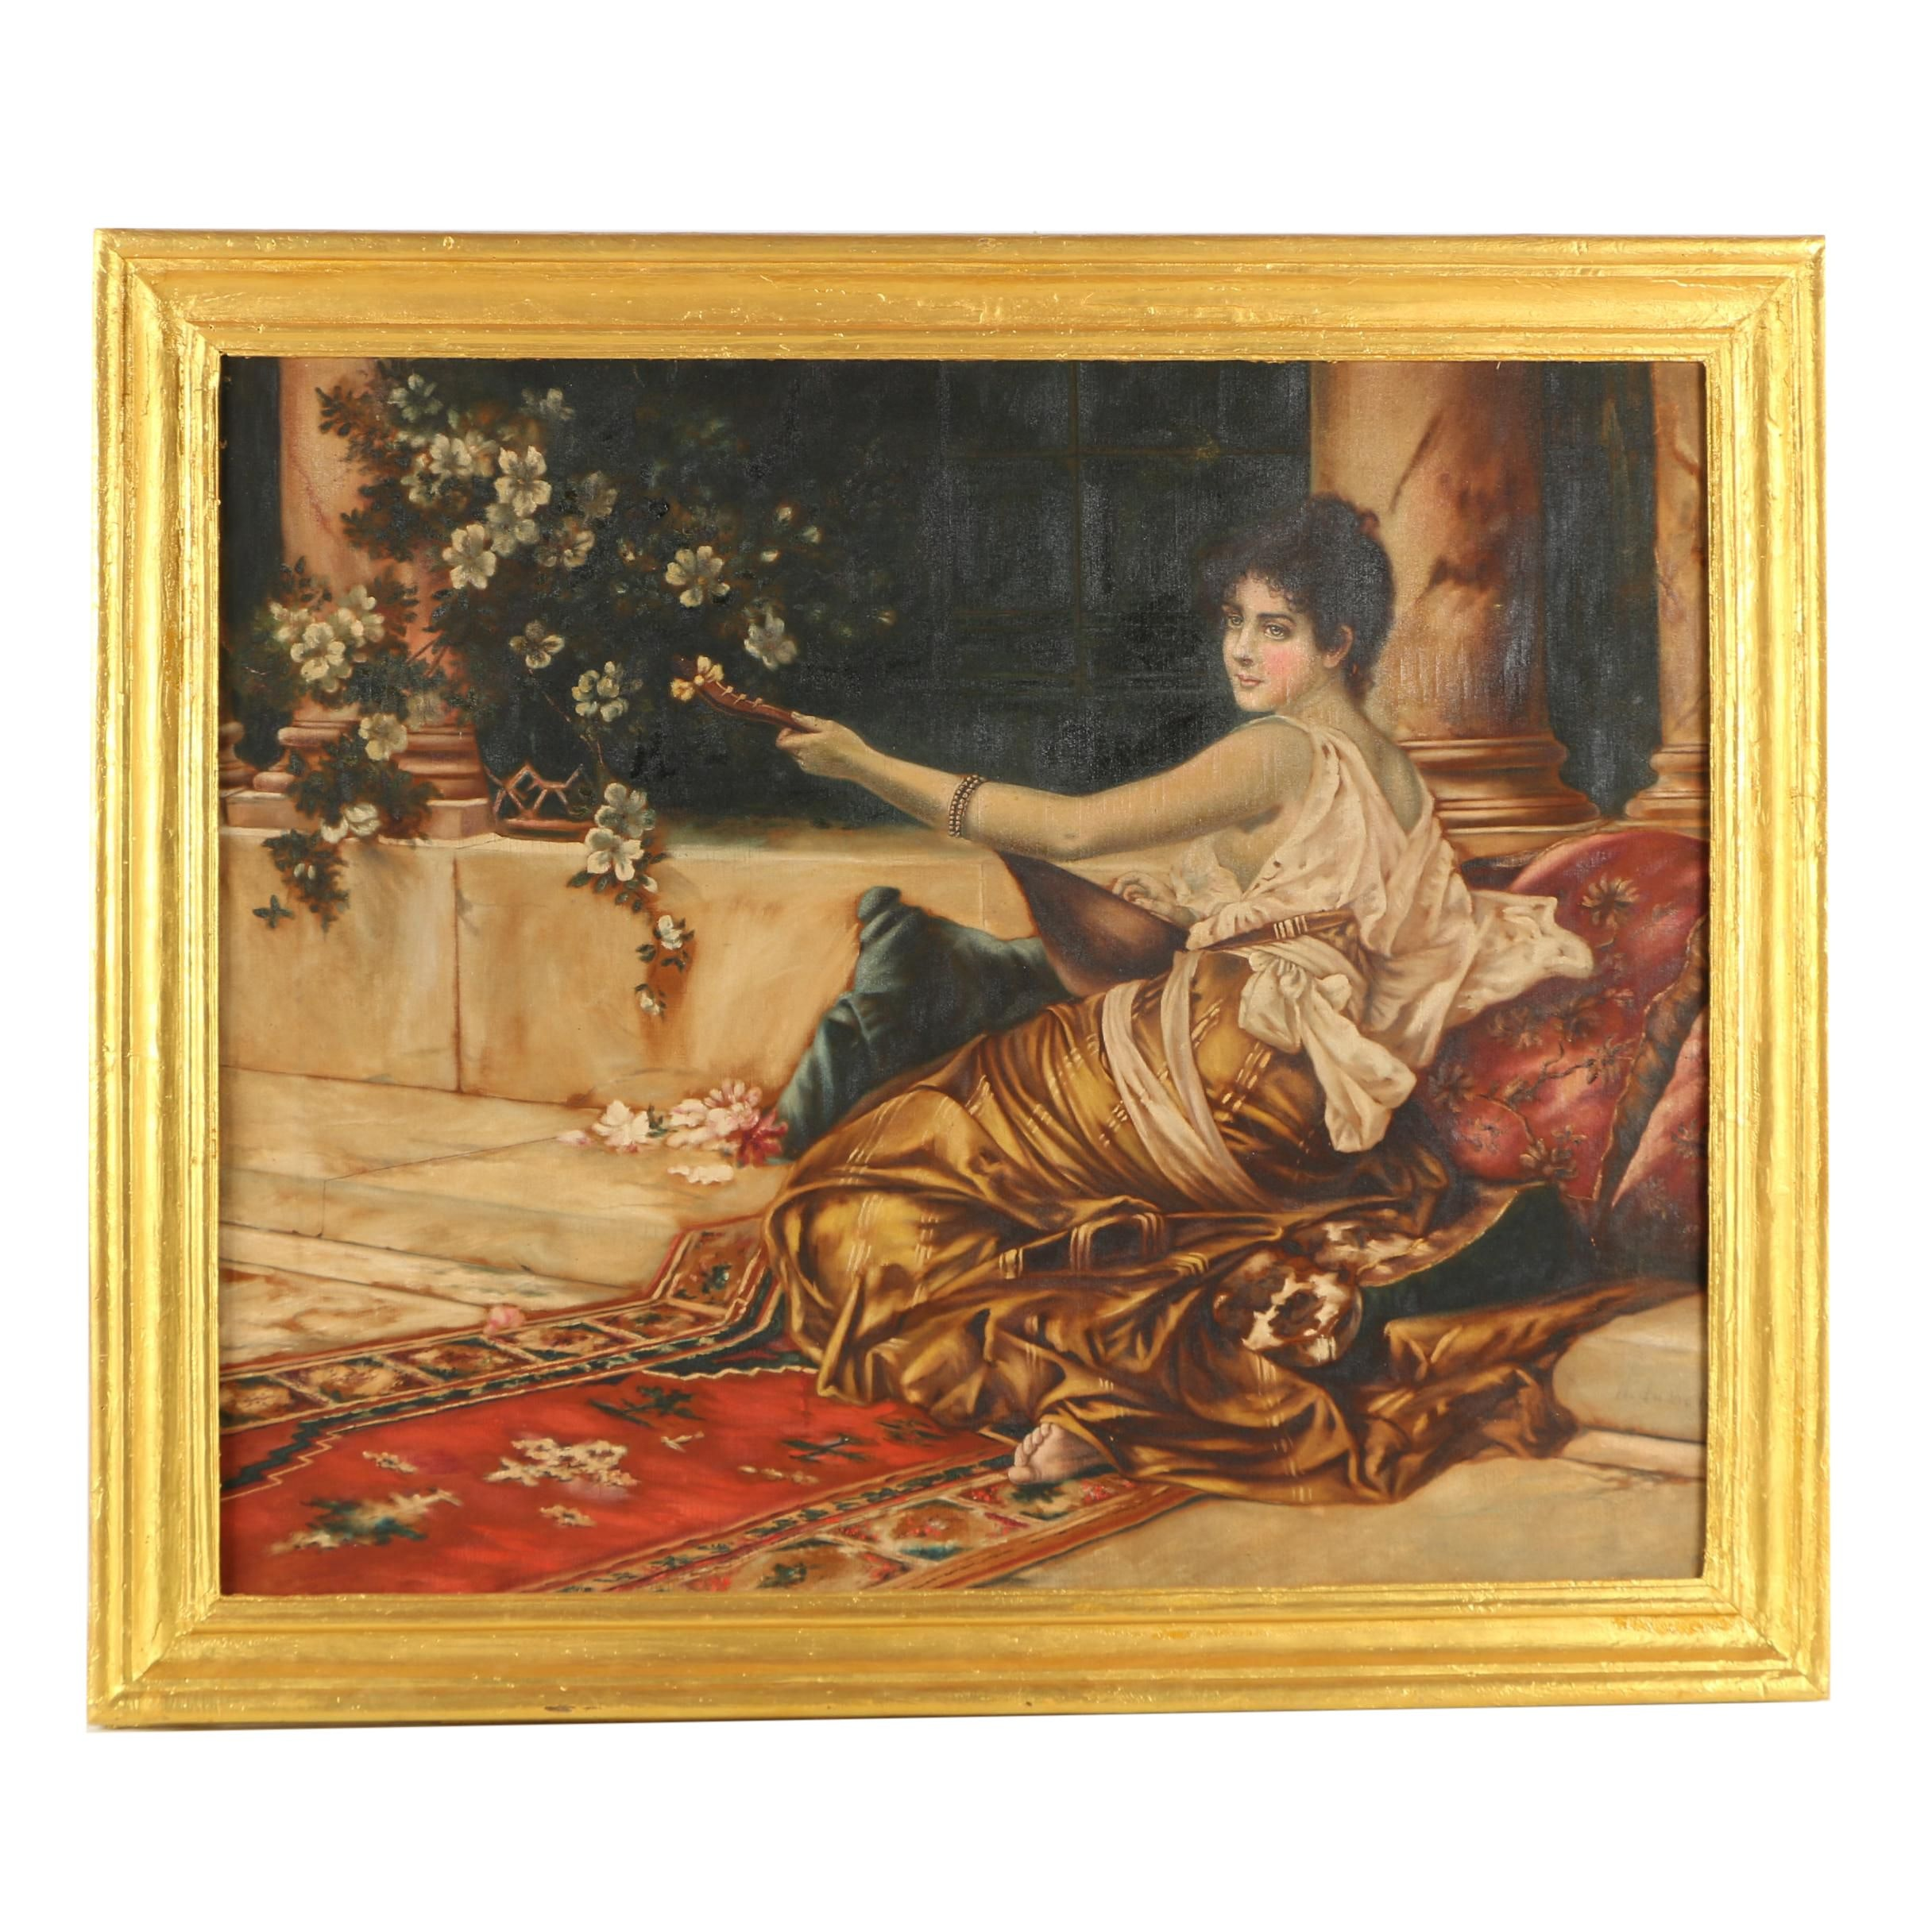 H. DuBois Copy Oil Painting on Fabric After Conrad Kiesel of Woman Playing Lute